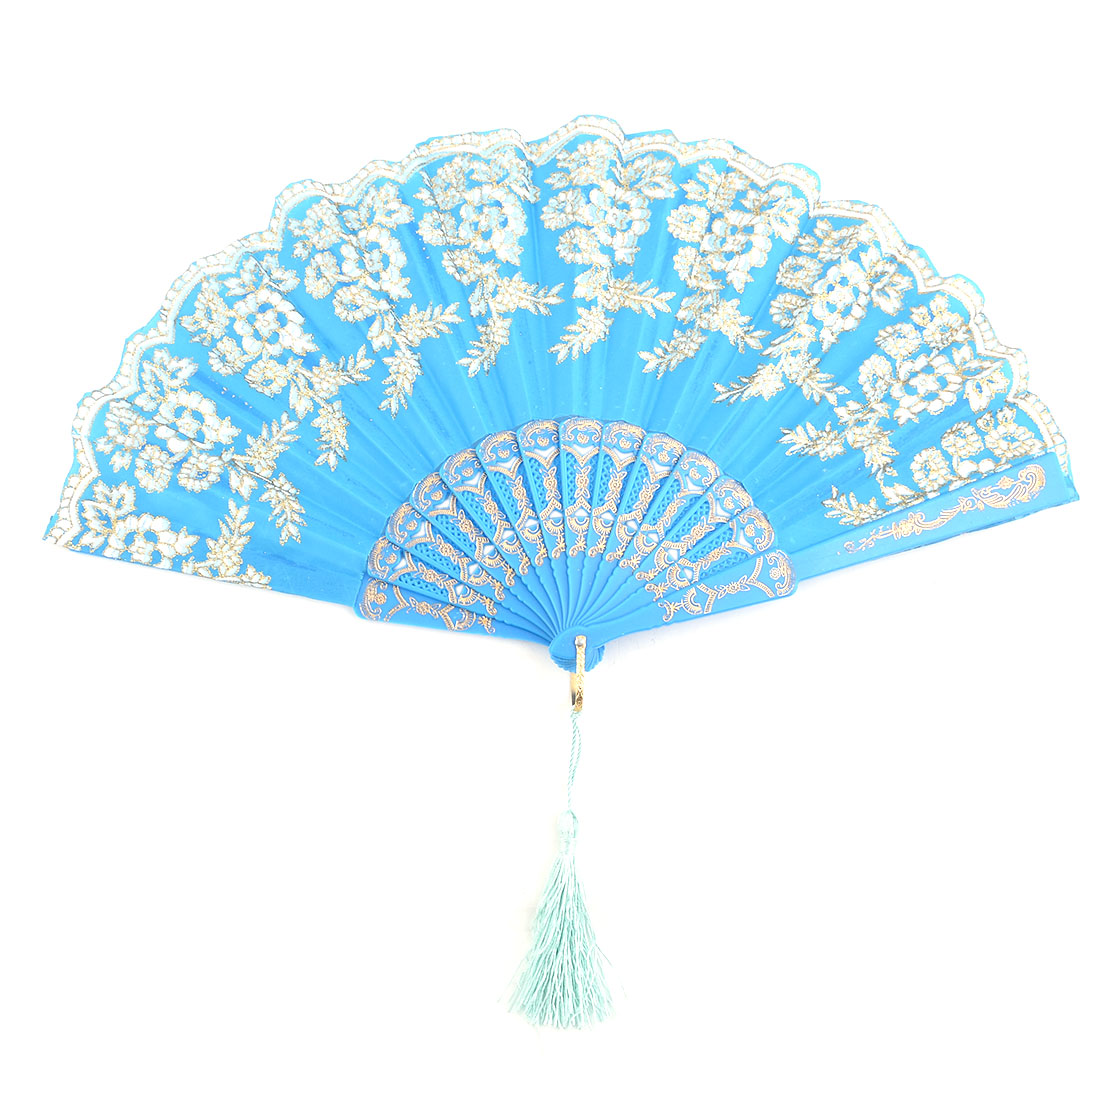 Home Plastic Frame Floral Pattern Folding Dancing Cooling Hand Fan Blue 23cm Length